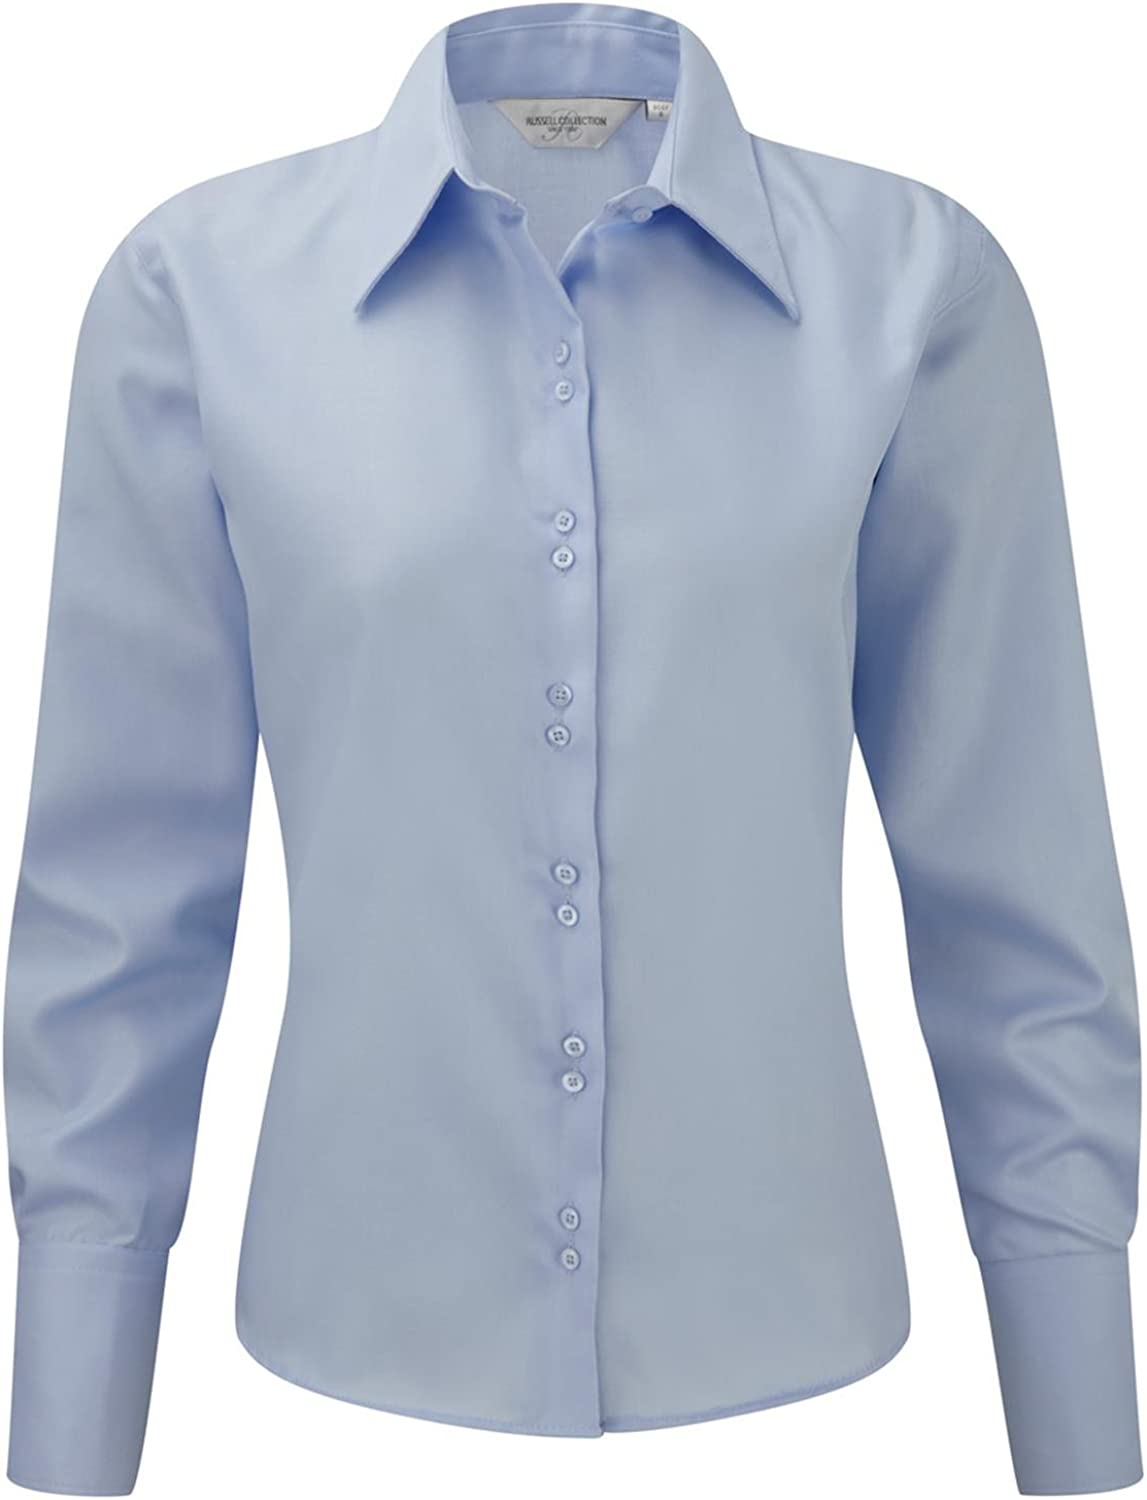 Russell Collection Womens Ultimate NonIron Long Sleeve Shirt